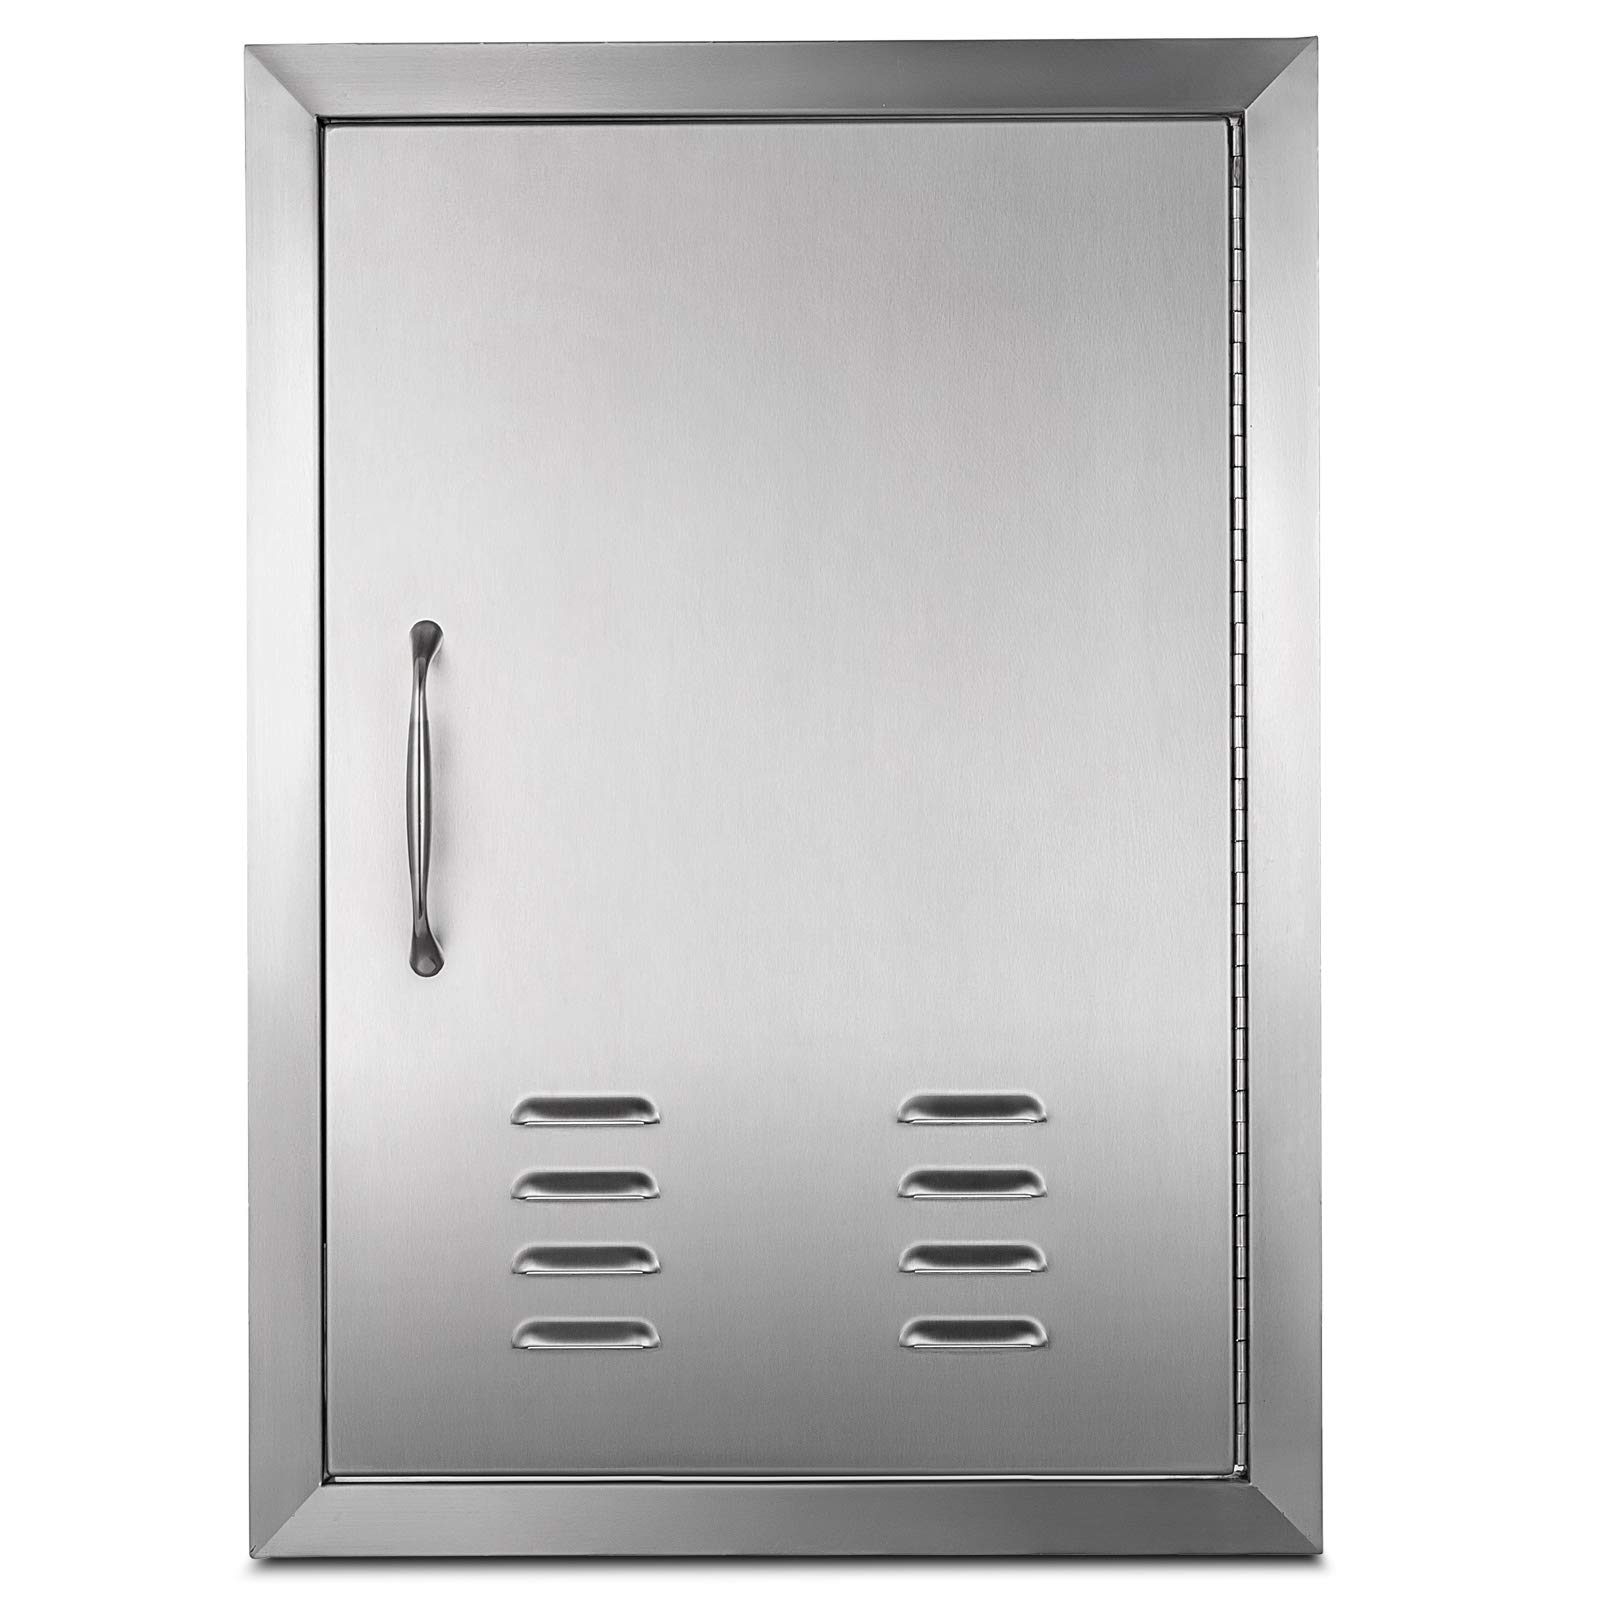 Happybuy BBQ Access door 17 x 24 Inch Vertical Island Door with Vents Stainless Steel Single Access Door Flush Mount for Outdoor Kitchen (17 x 24 Inch Vertical Island Door with vents)